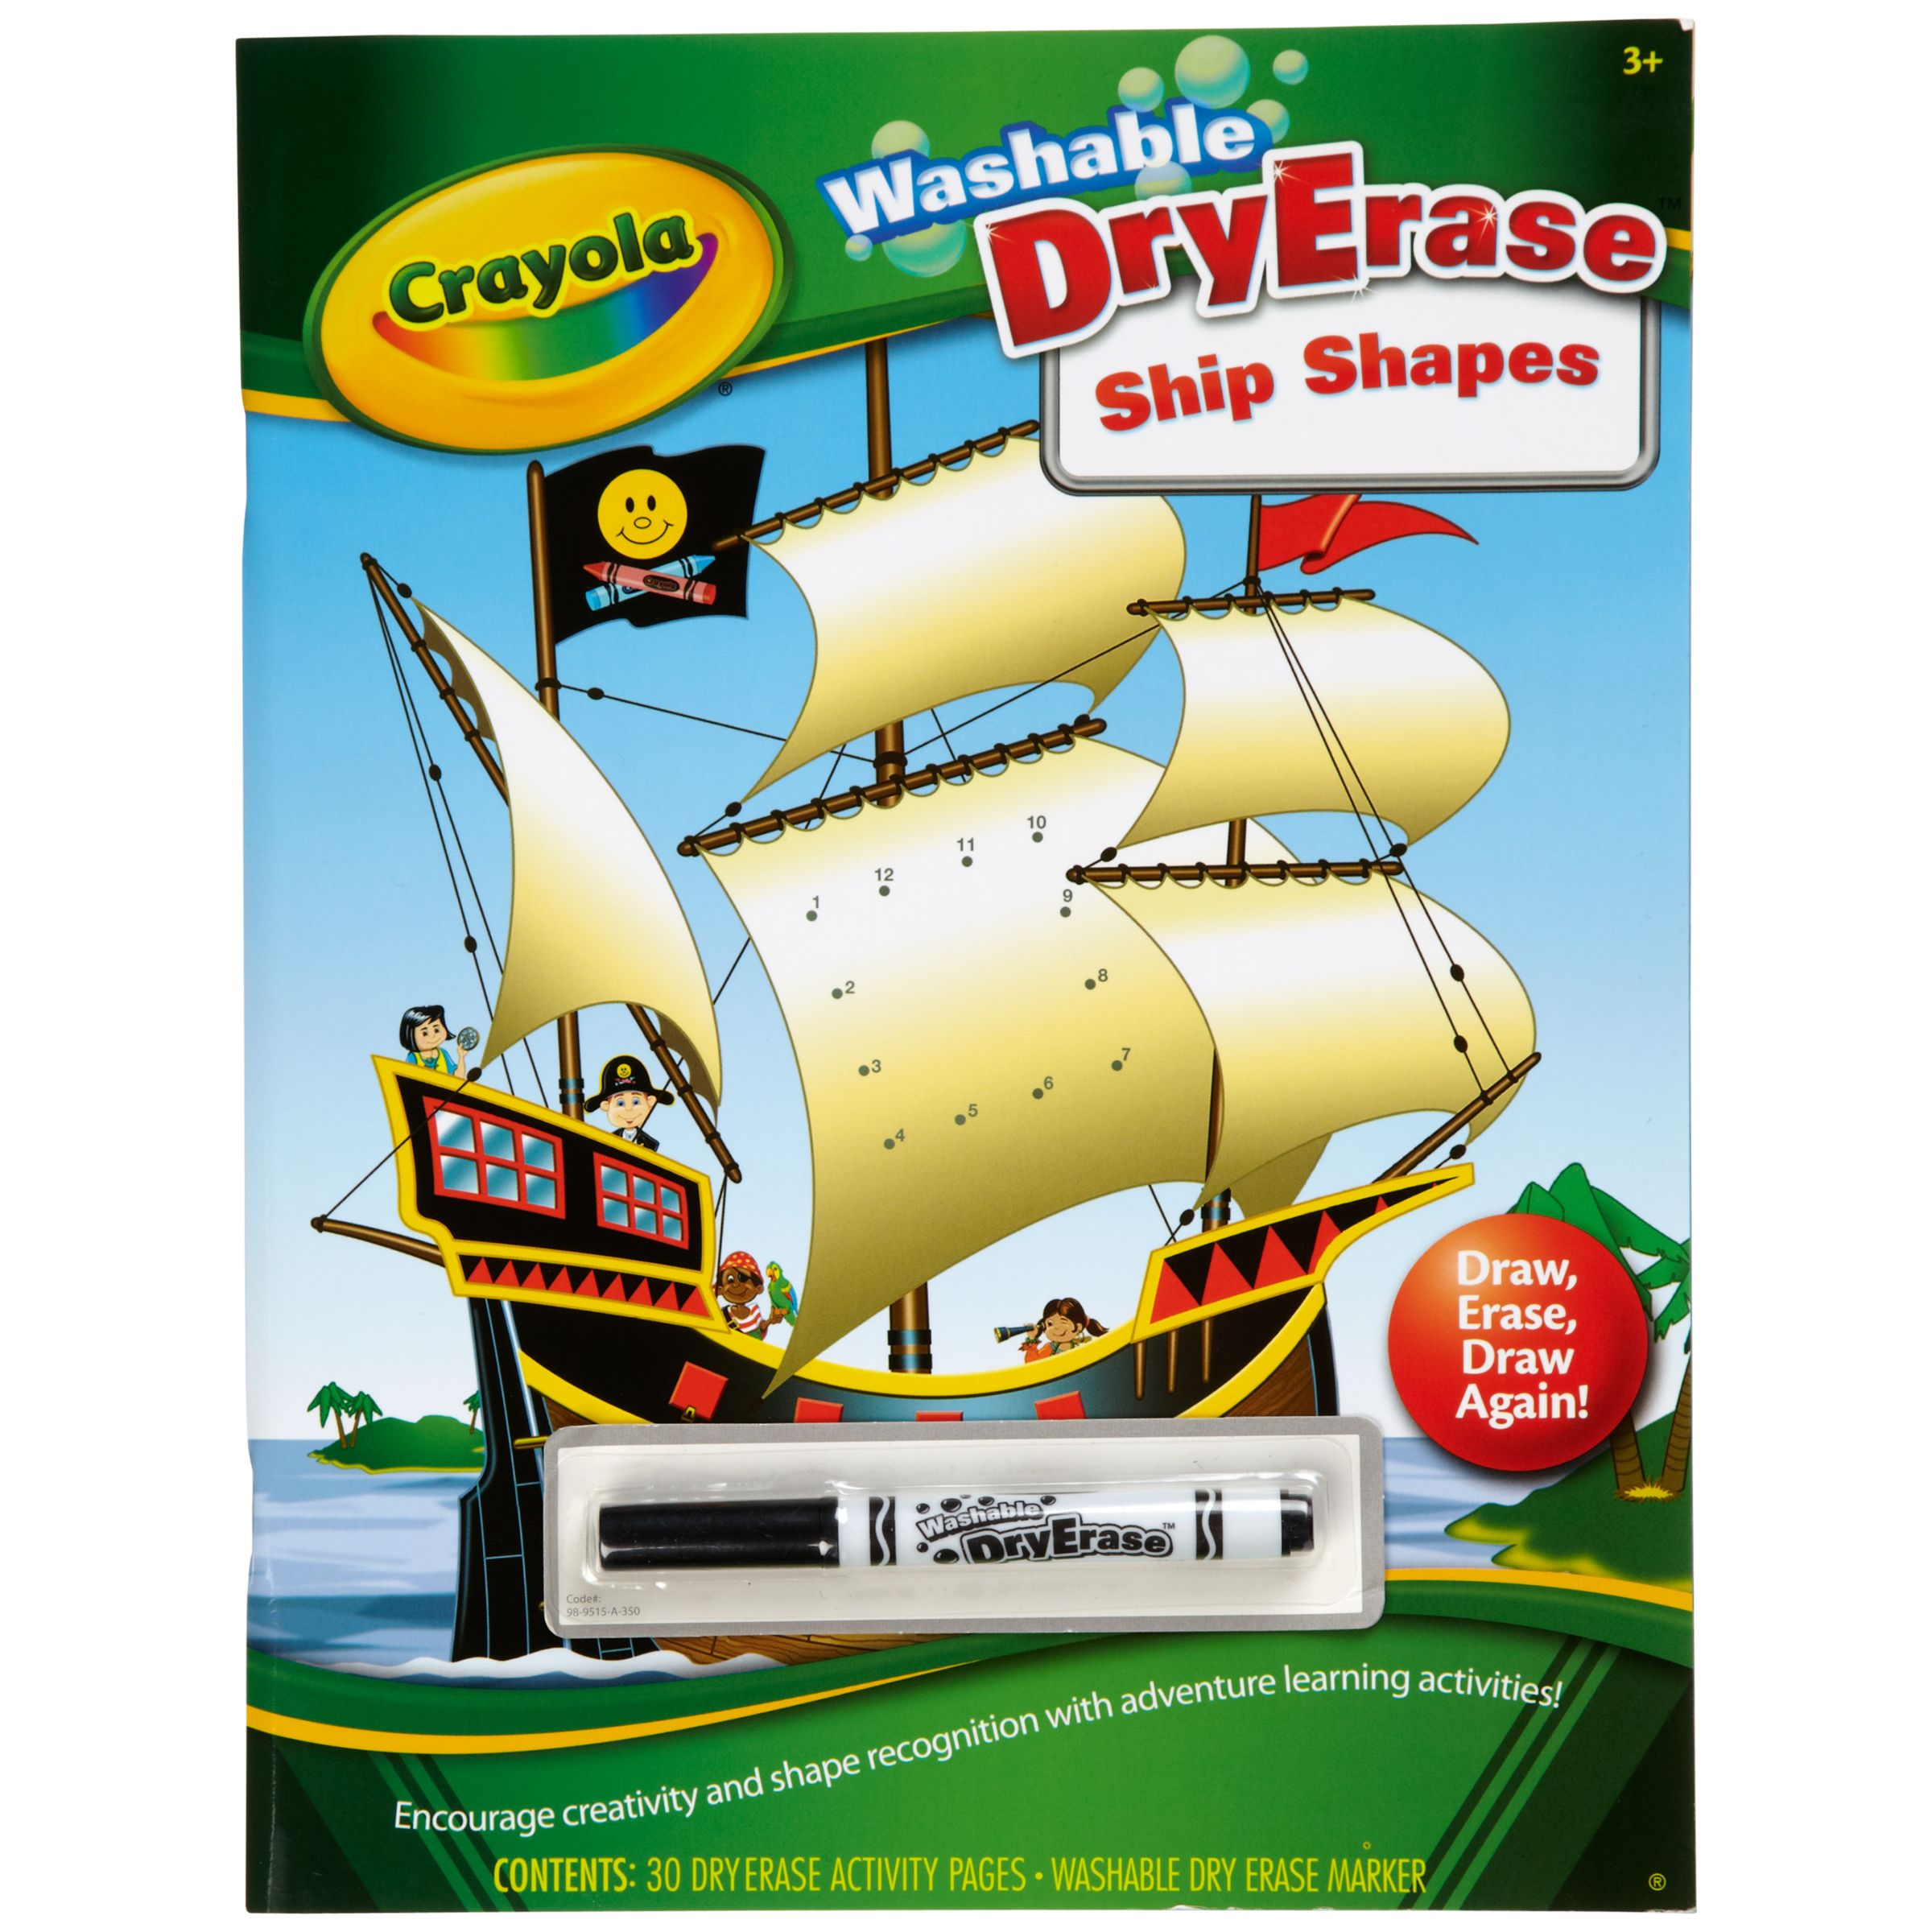 Crayola Washable DryErase Ship Shapes Activity Book